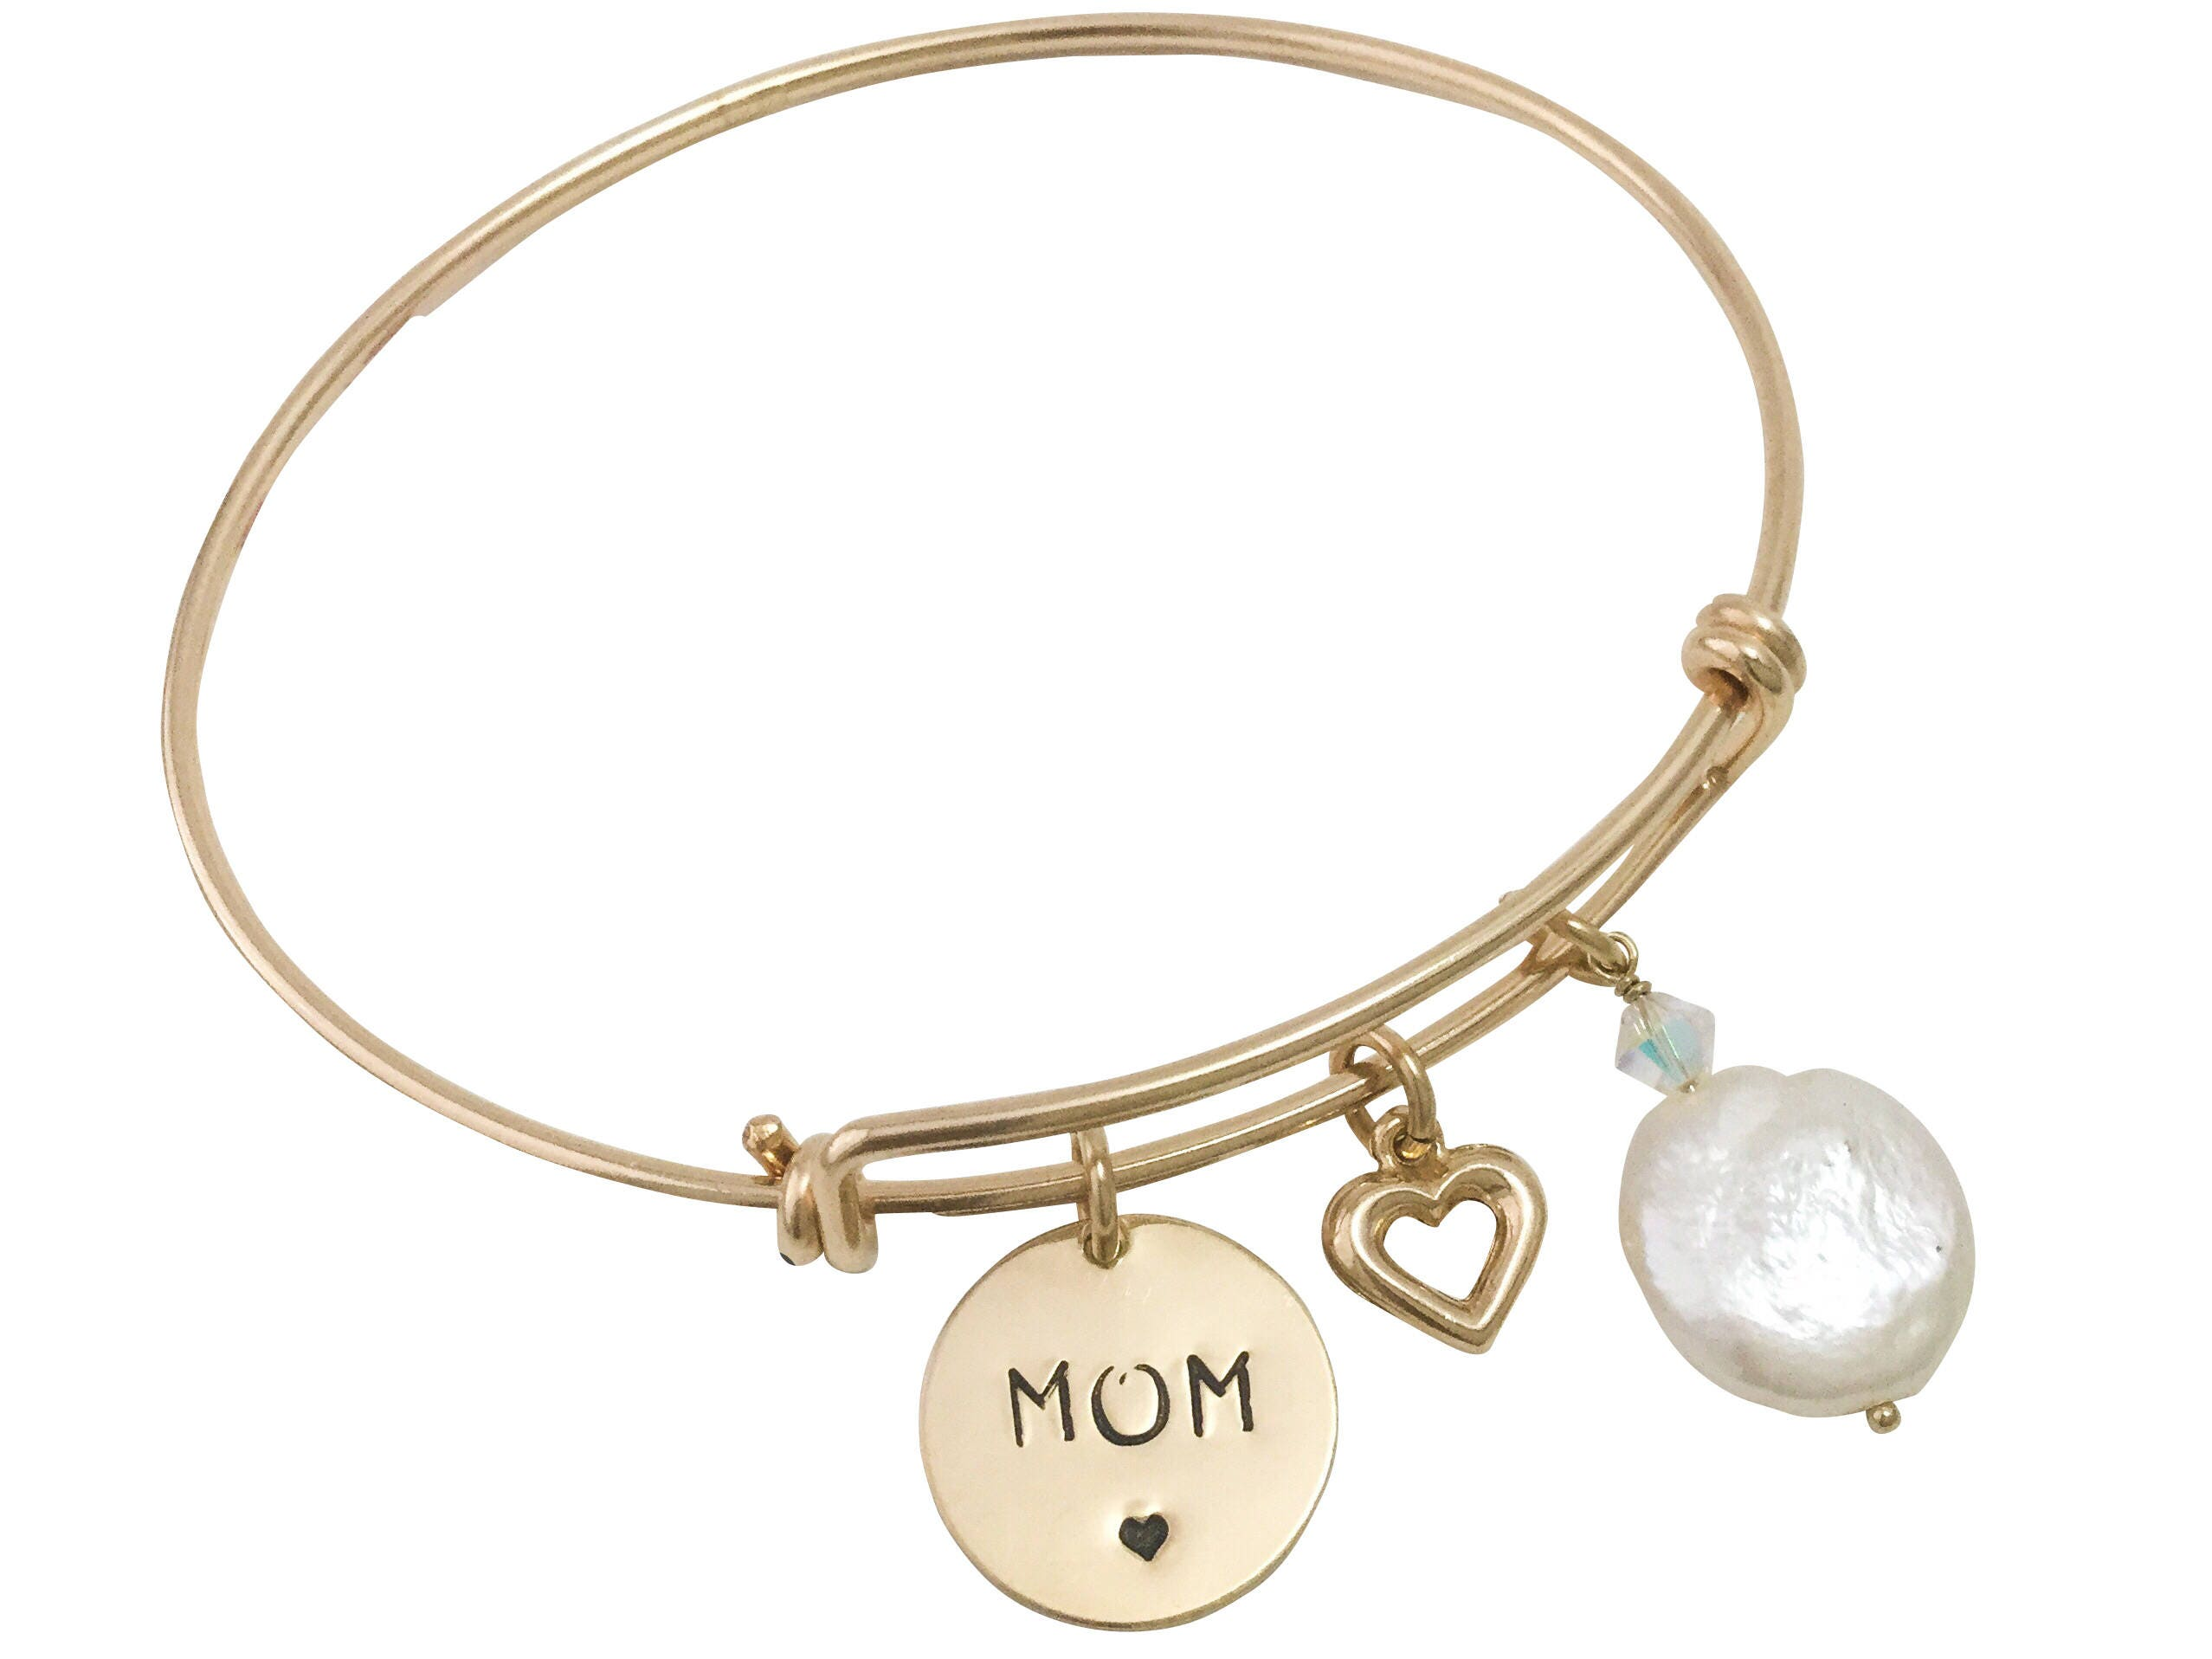 beach necklace best bangle mom transformation on asset bracelet the coastal passion products bangles